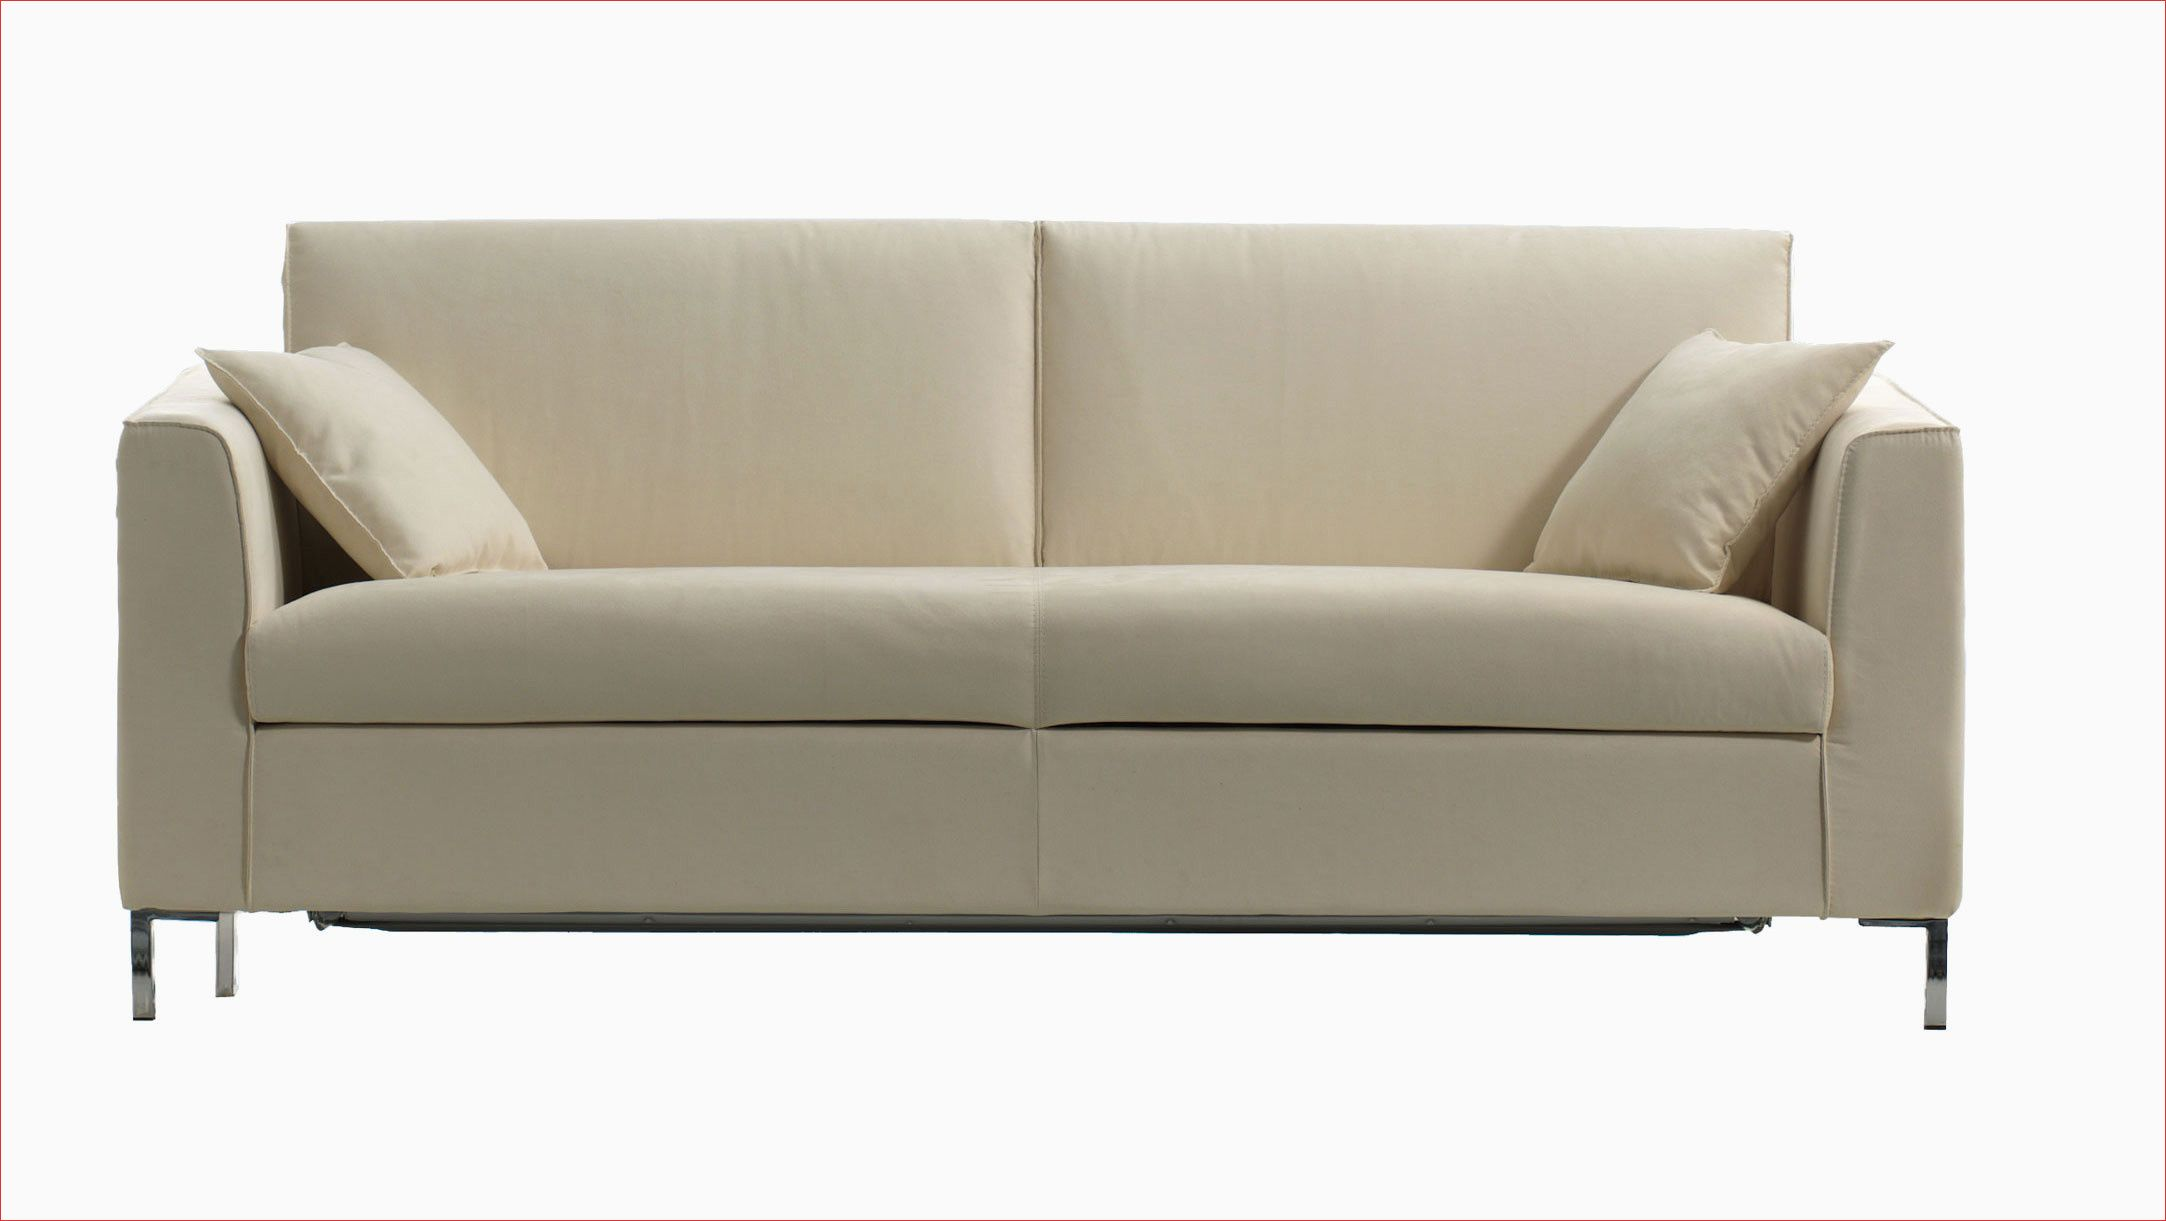 Canape Convertible 2 Places But Genial S Canape Convertible Cuir 2 Places In 2020 Sofa Convertible Furniture